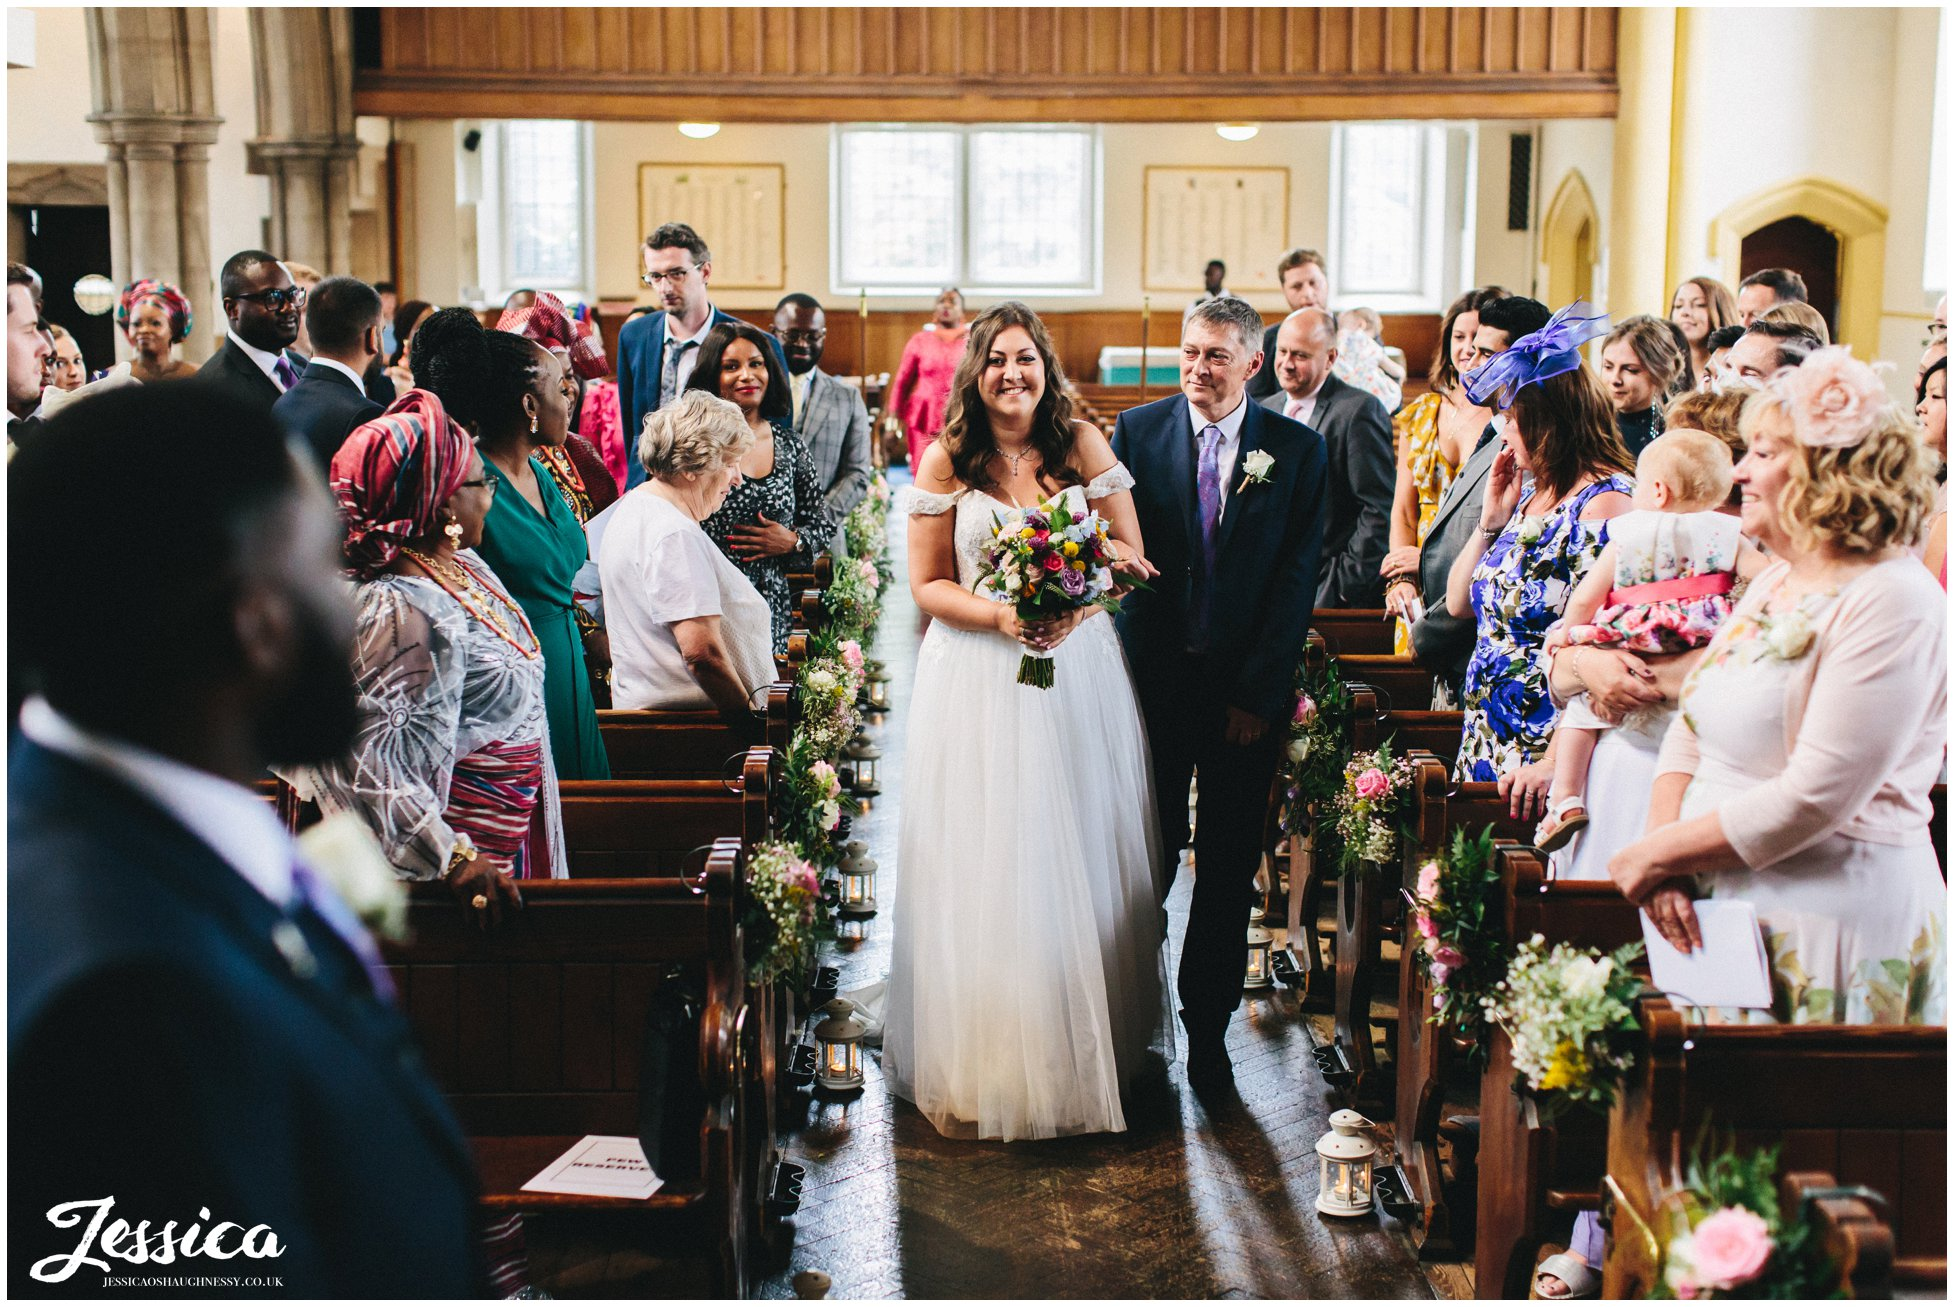 the bride smiles at her groom as she walks down the aisle with her dad